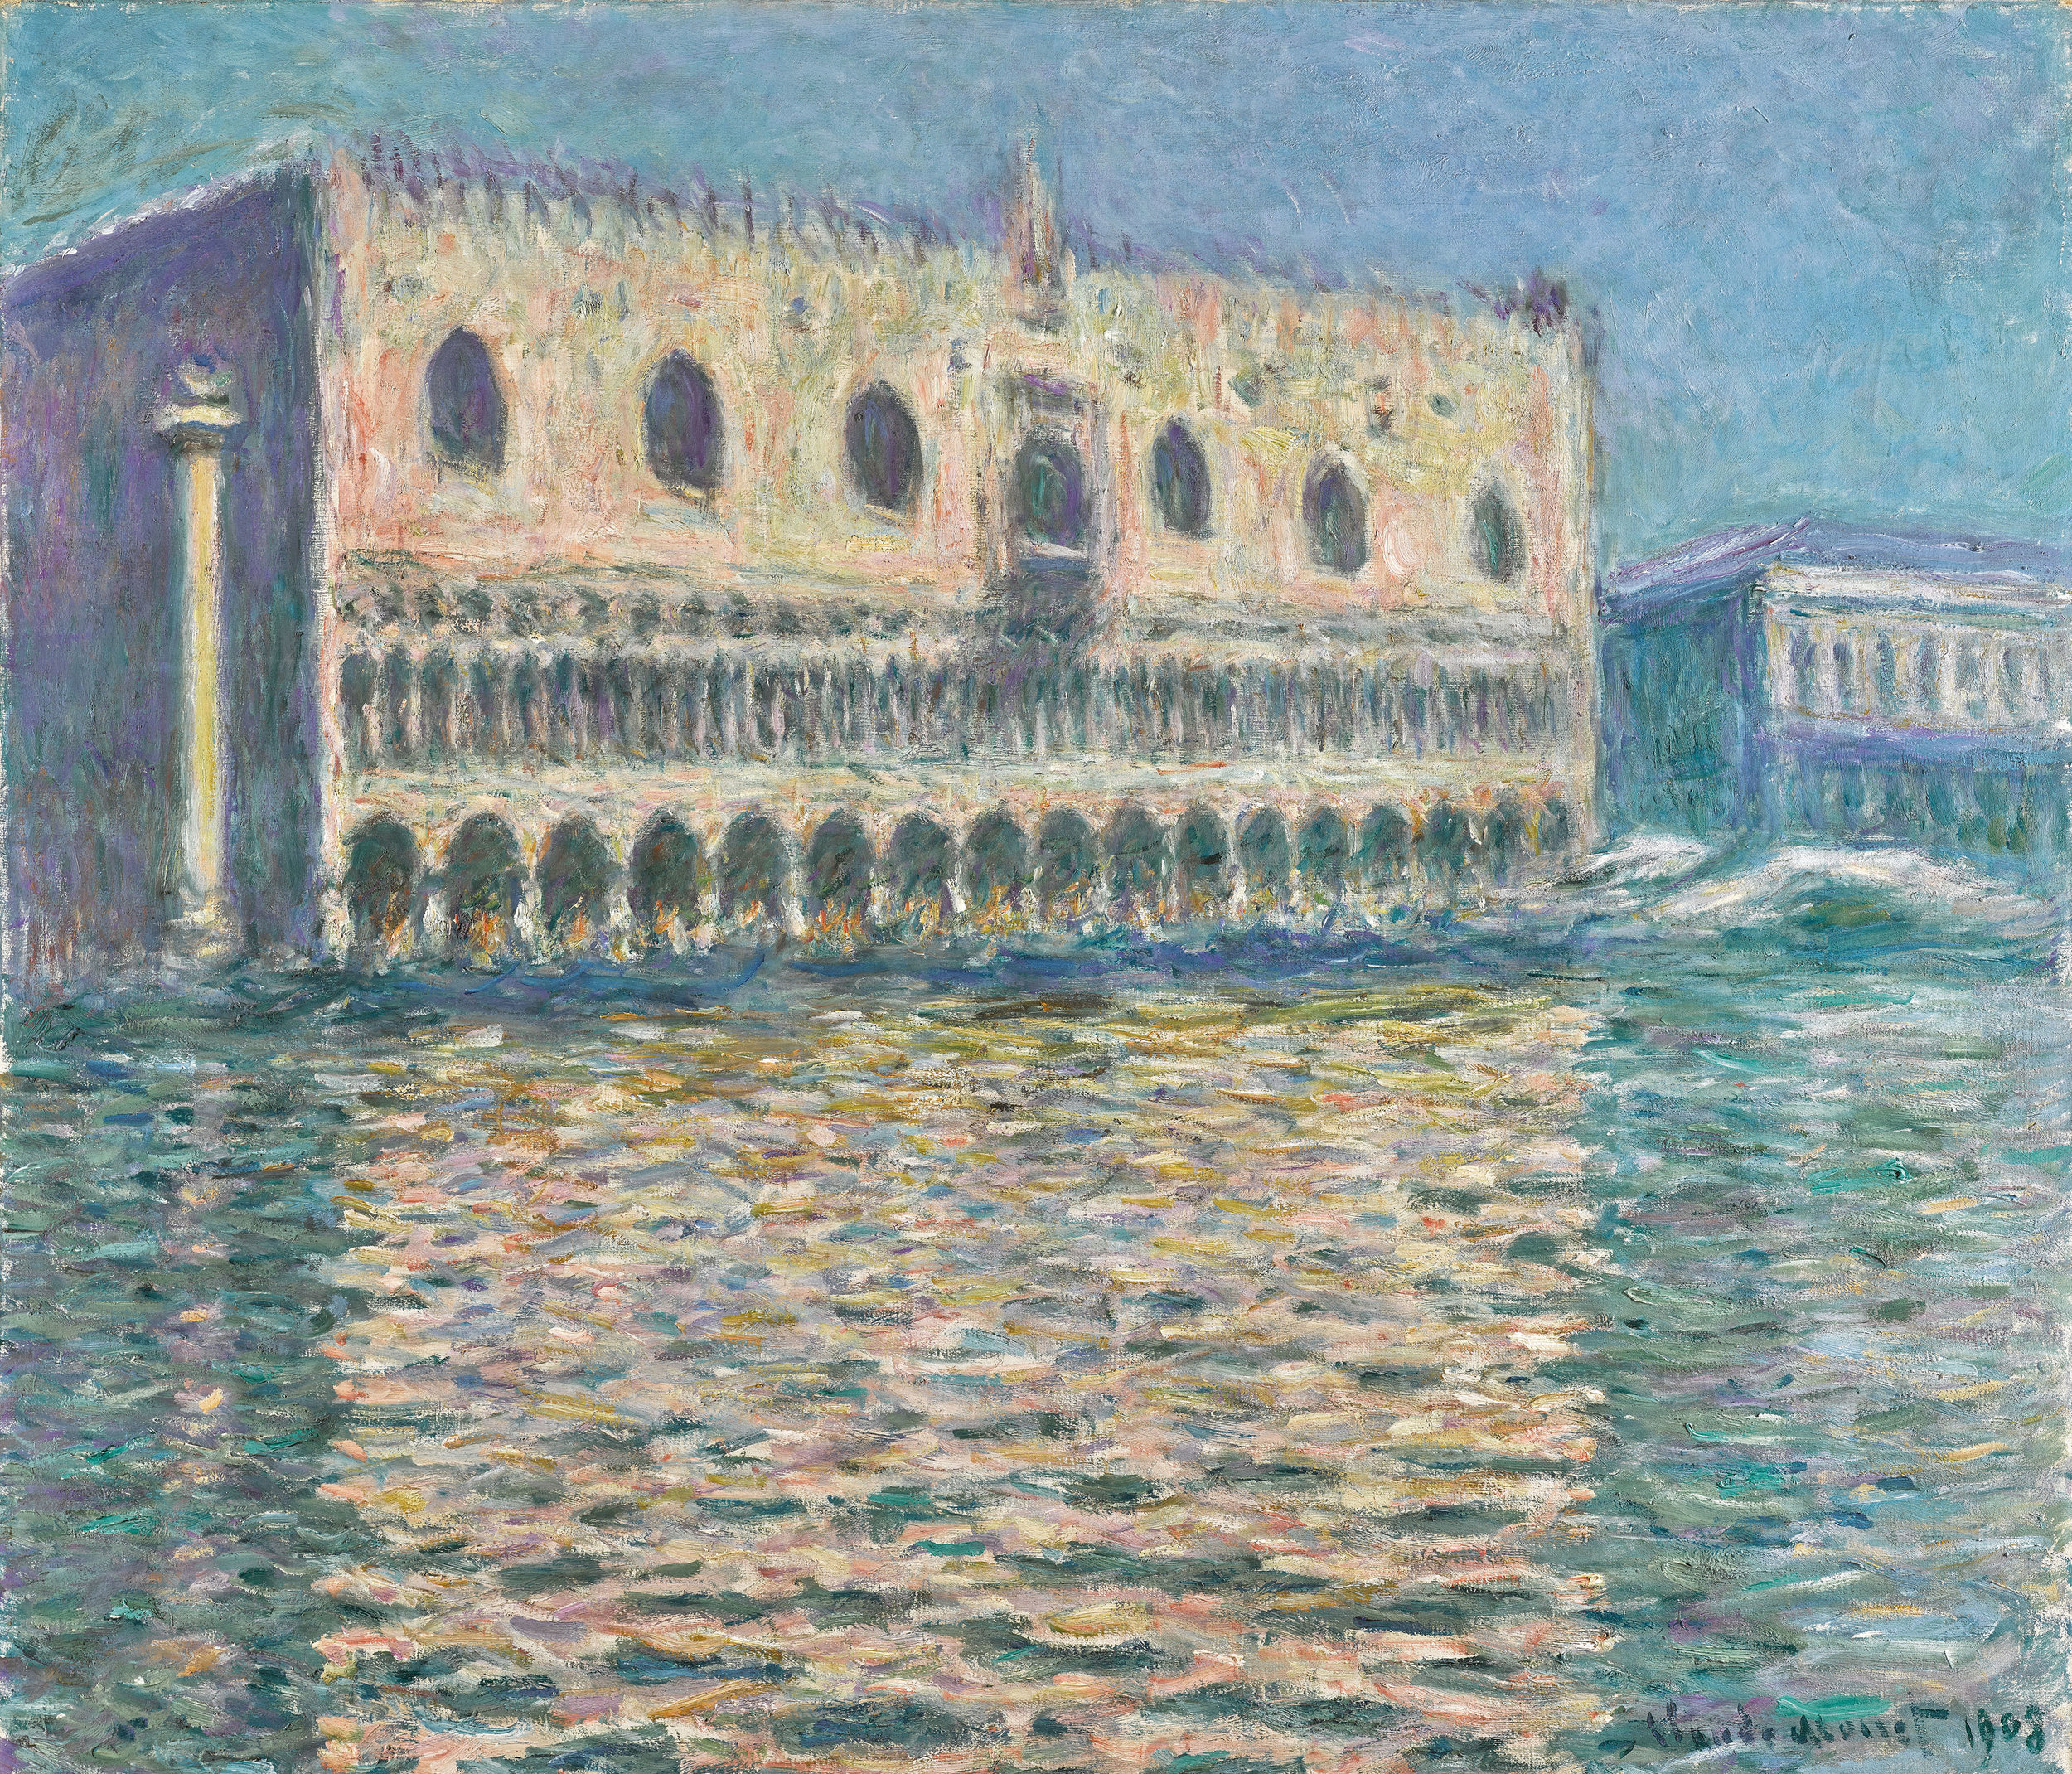 Lot 6 Claude Monet, Le Palais Ducal, oil on canvas, 1908 (est. £20,000,000-30,000,000)